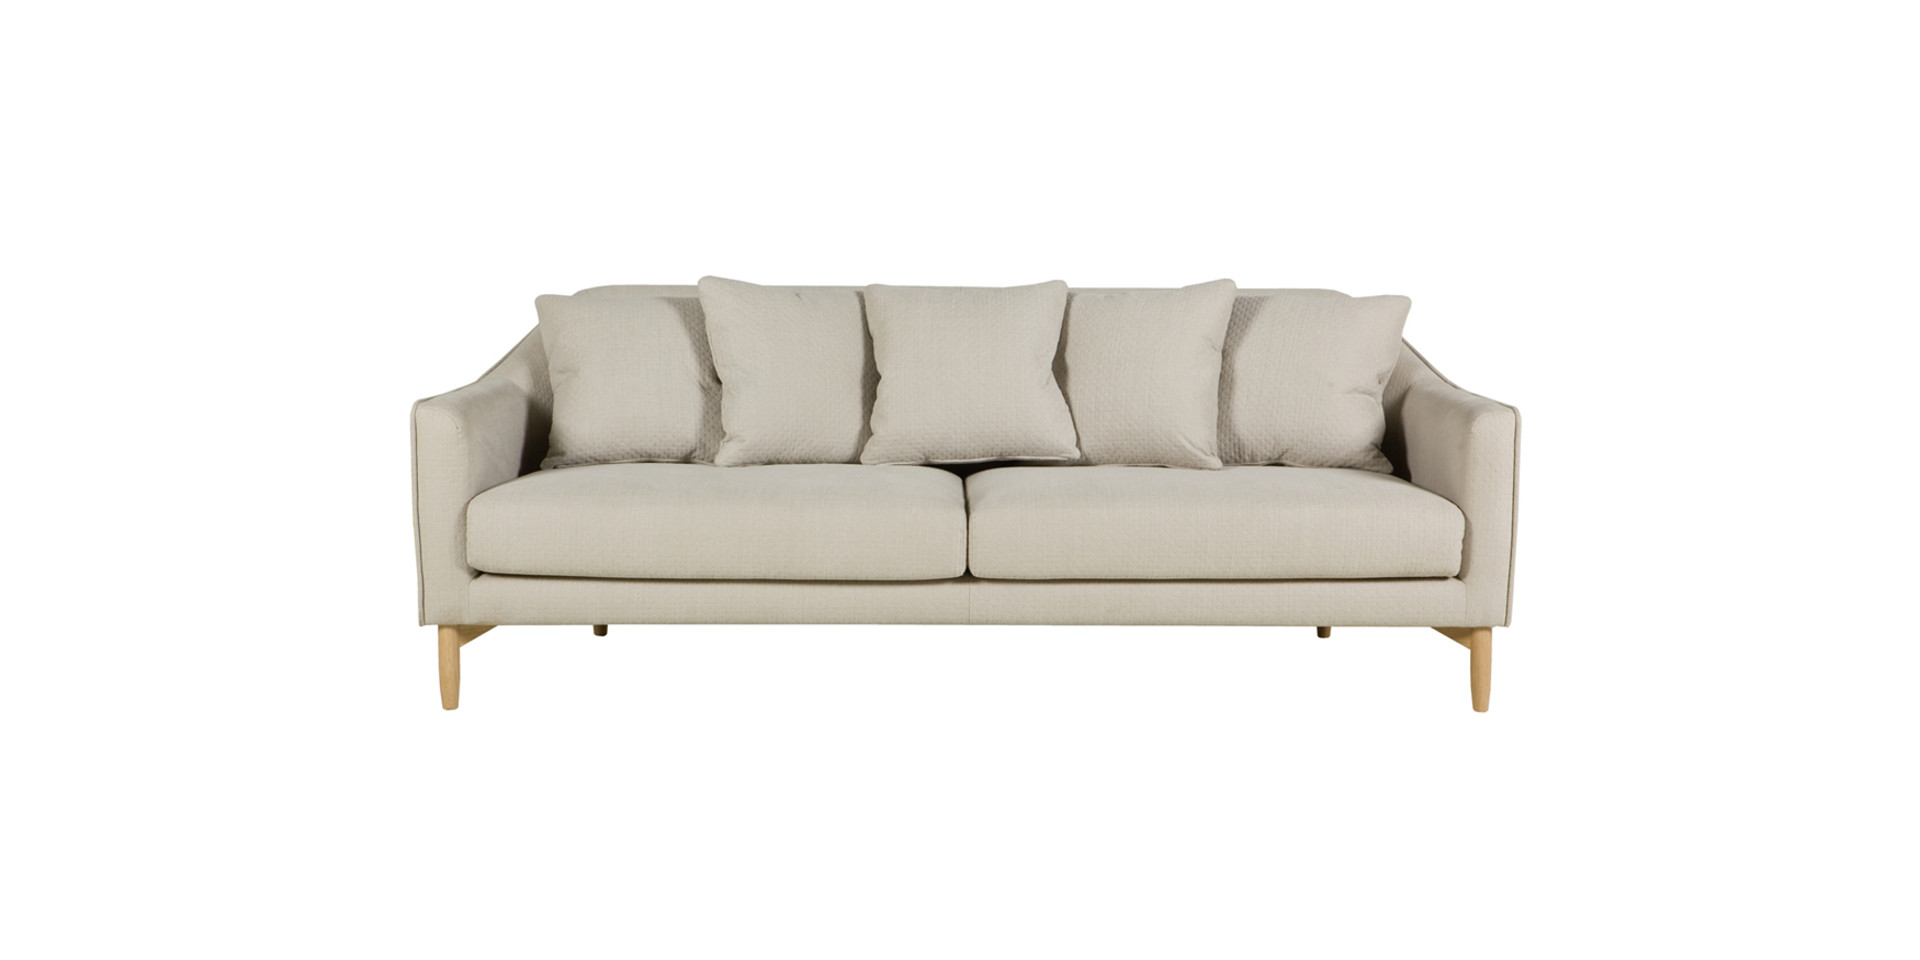 sits-ivy-canape-3seater_caleido3790_light_beige_perforated_1